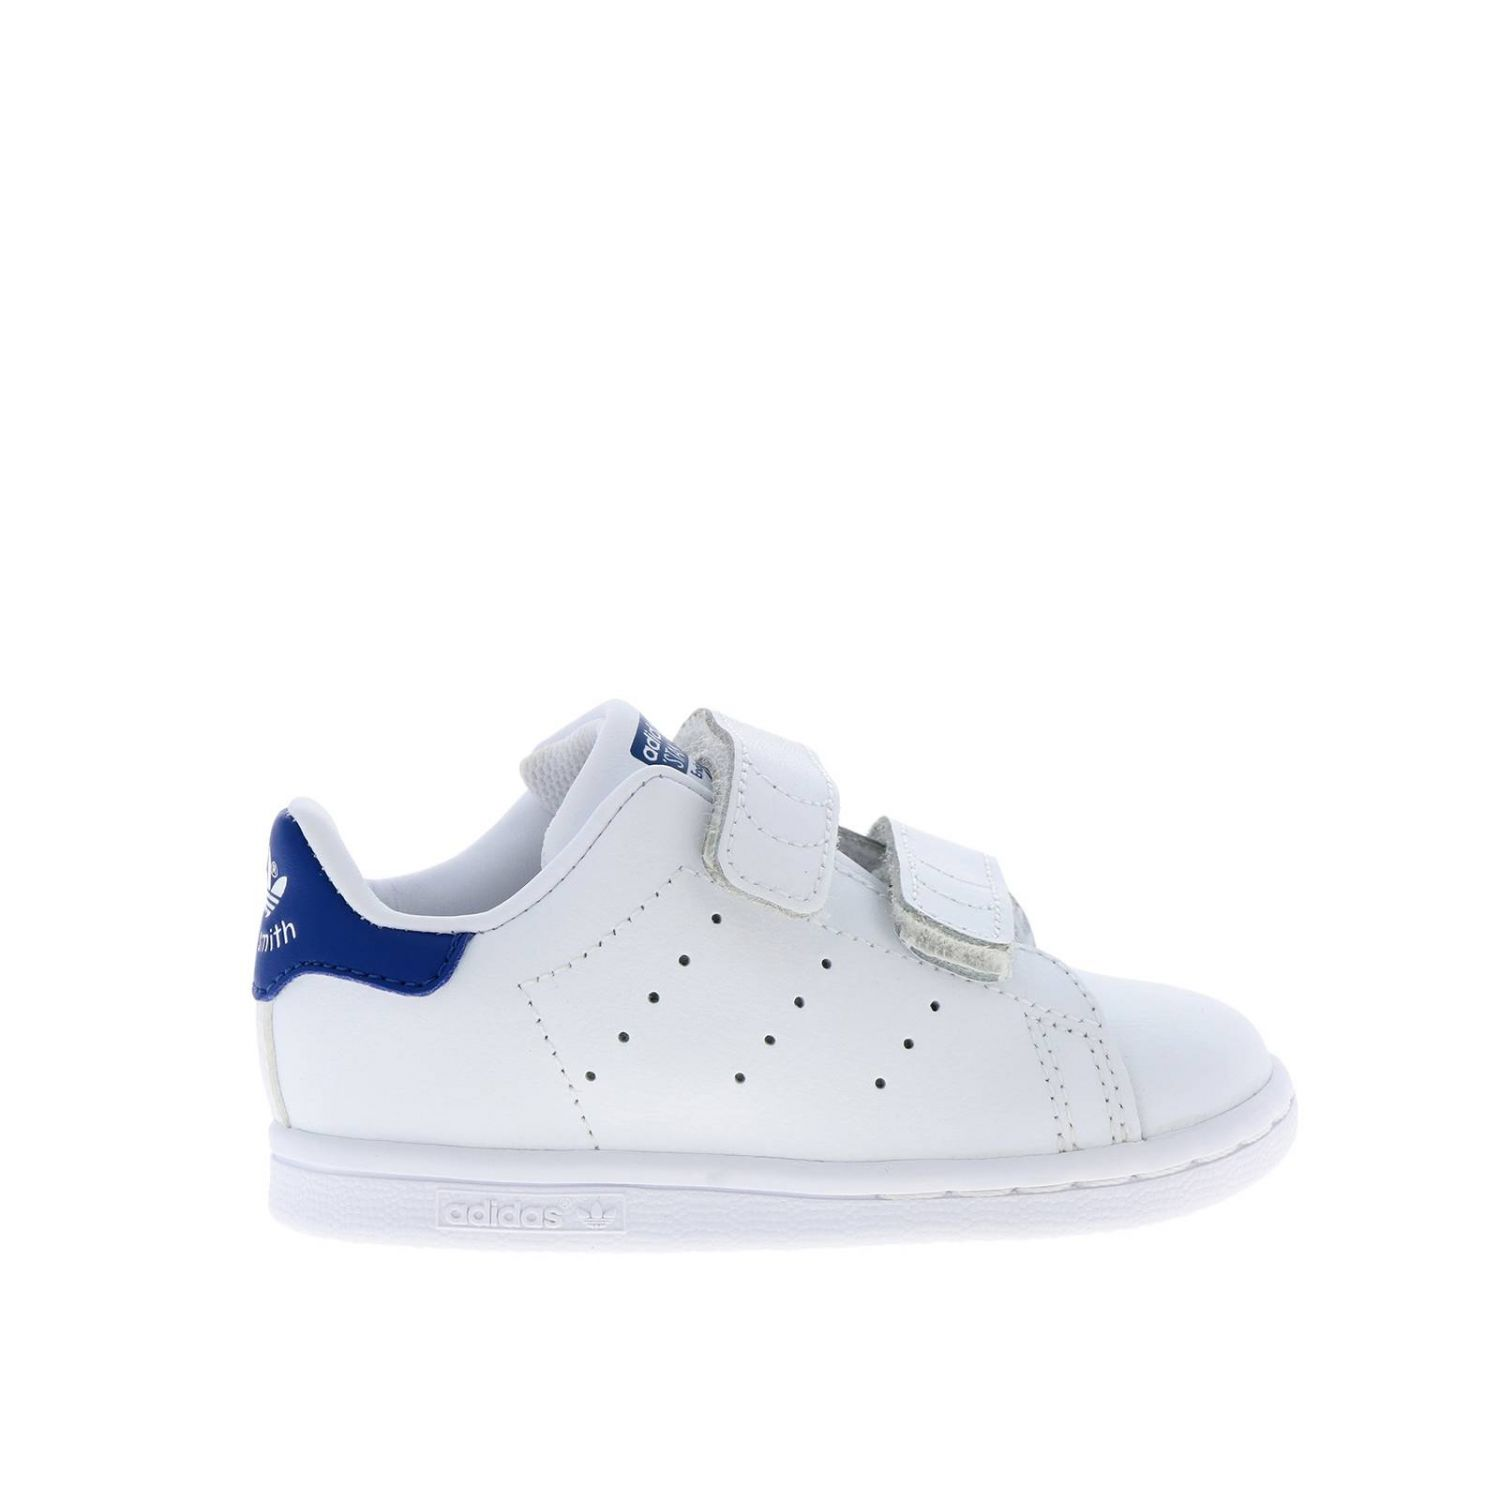 Shoes Adidas Originals: Stan Smith Adidas Originals Sneakers in smooth leather with colored heel white 1